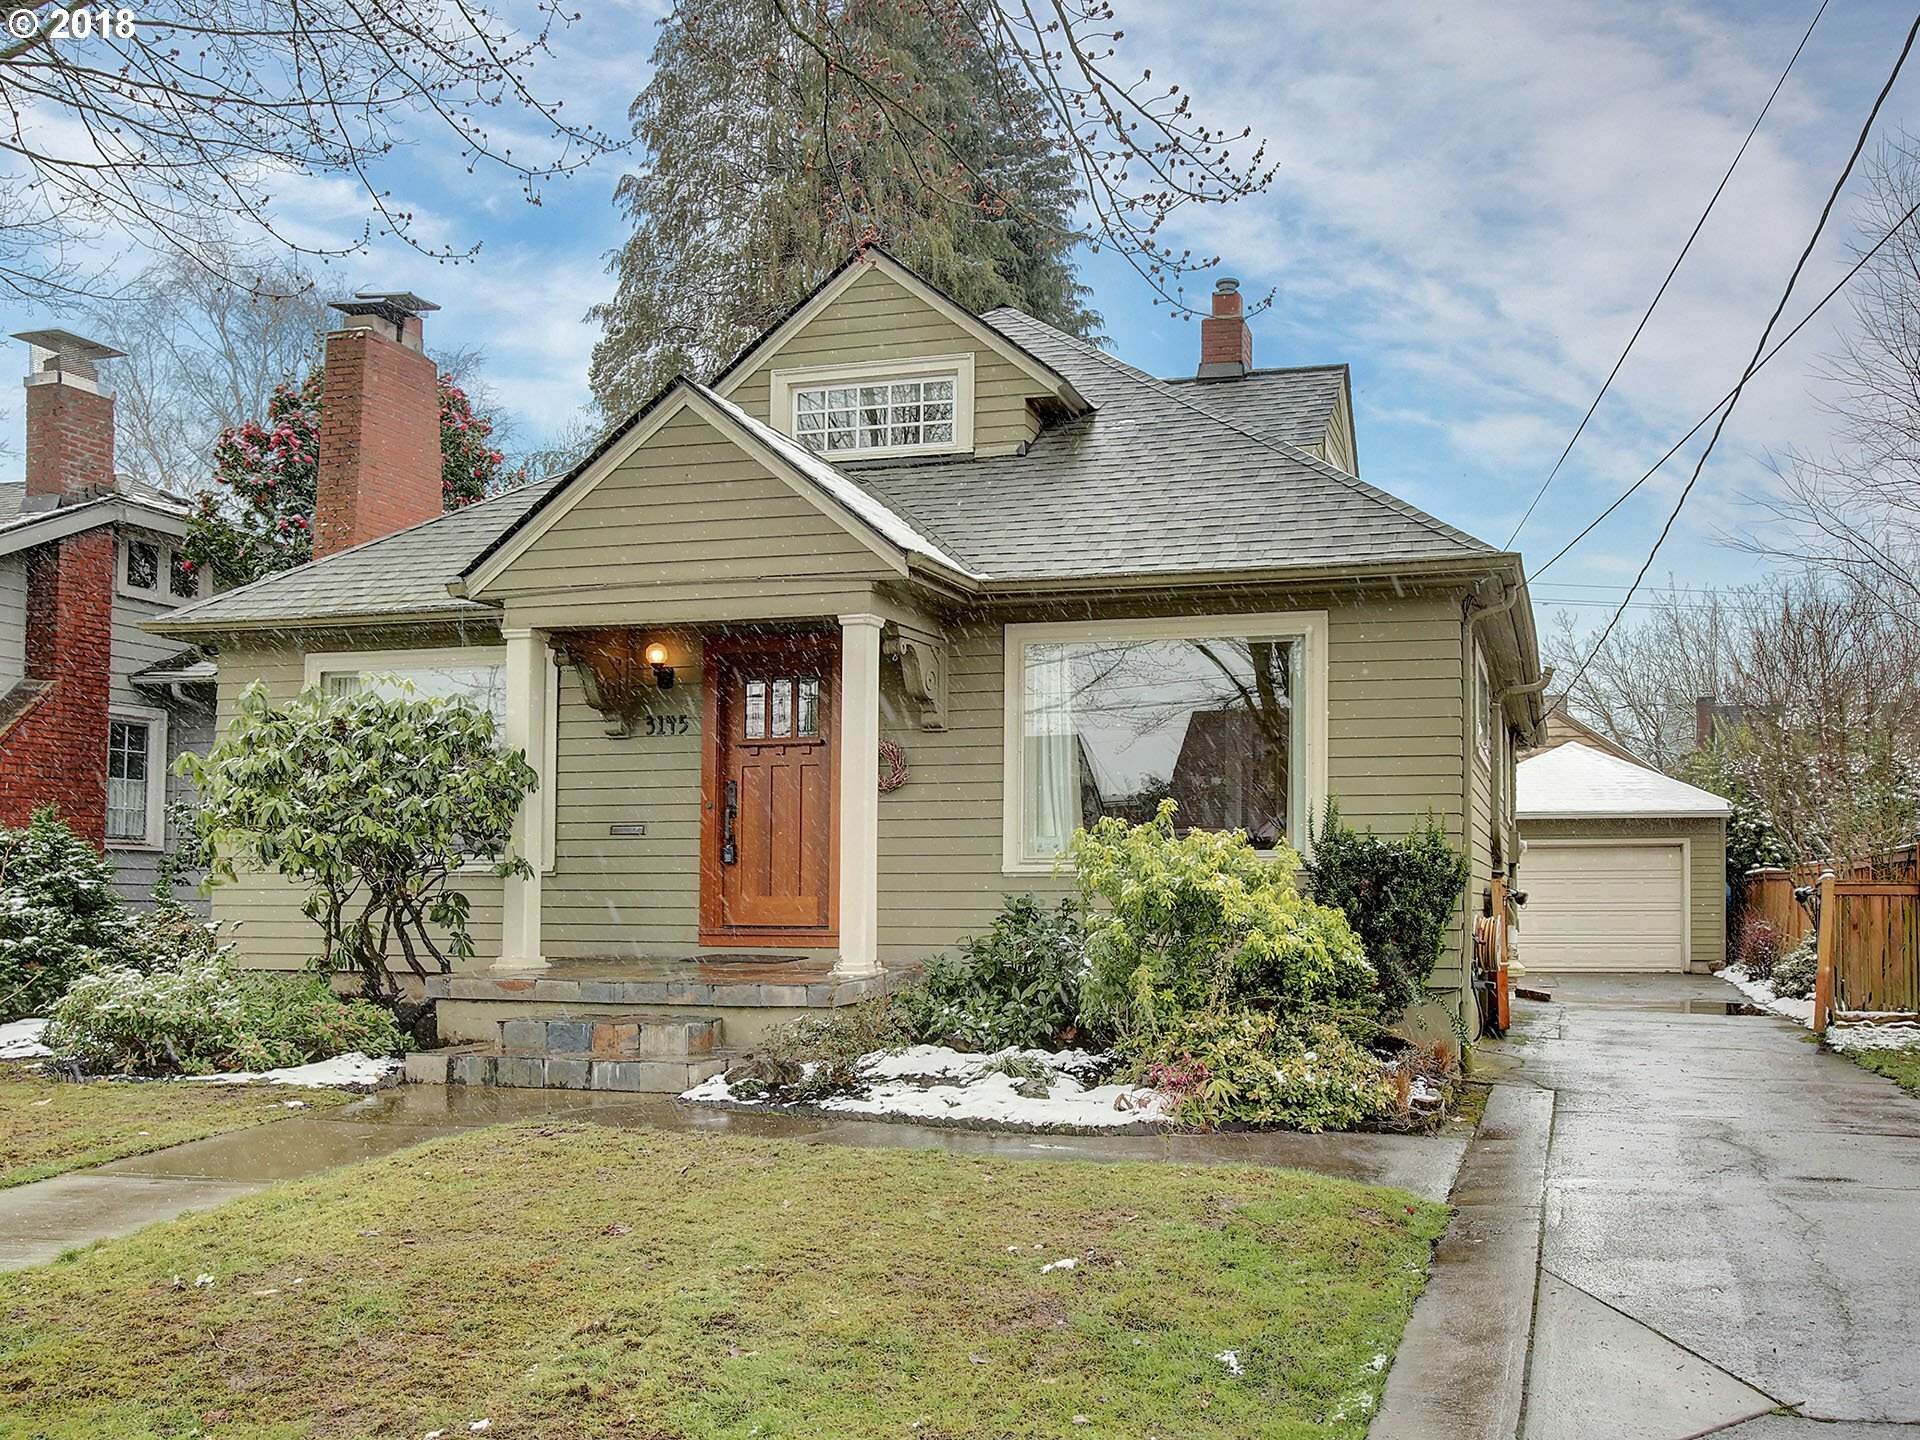 3145 Ne 25th Ave, Portland, OR - USA (photo 1)